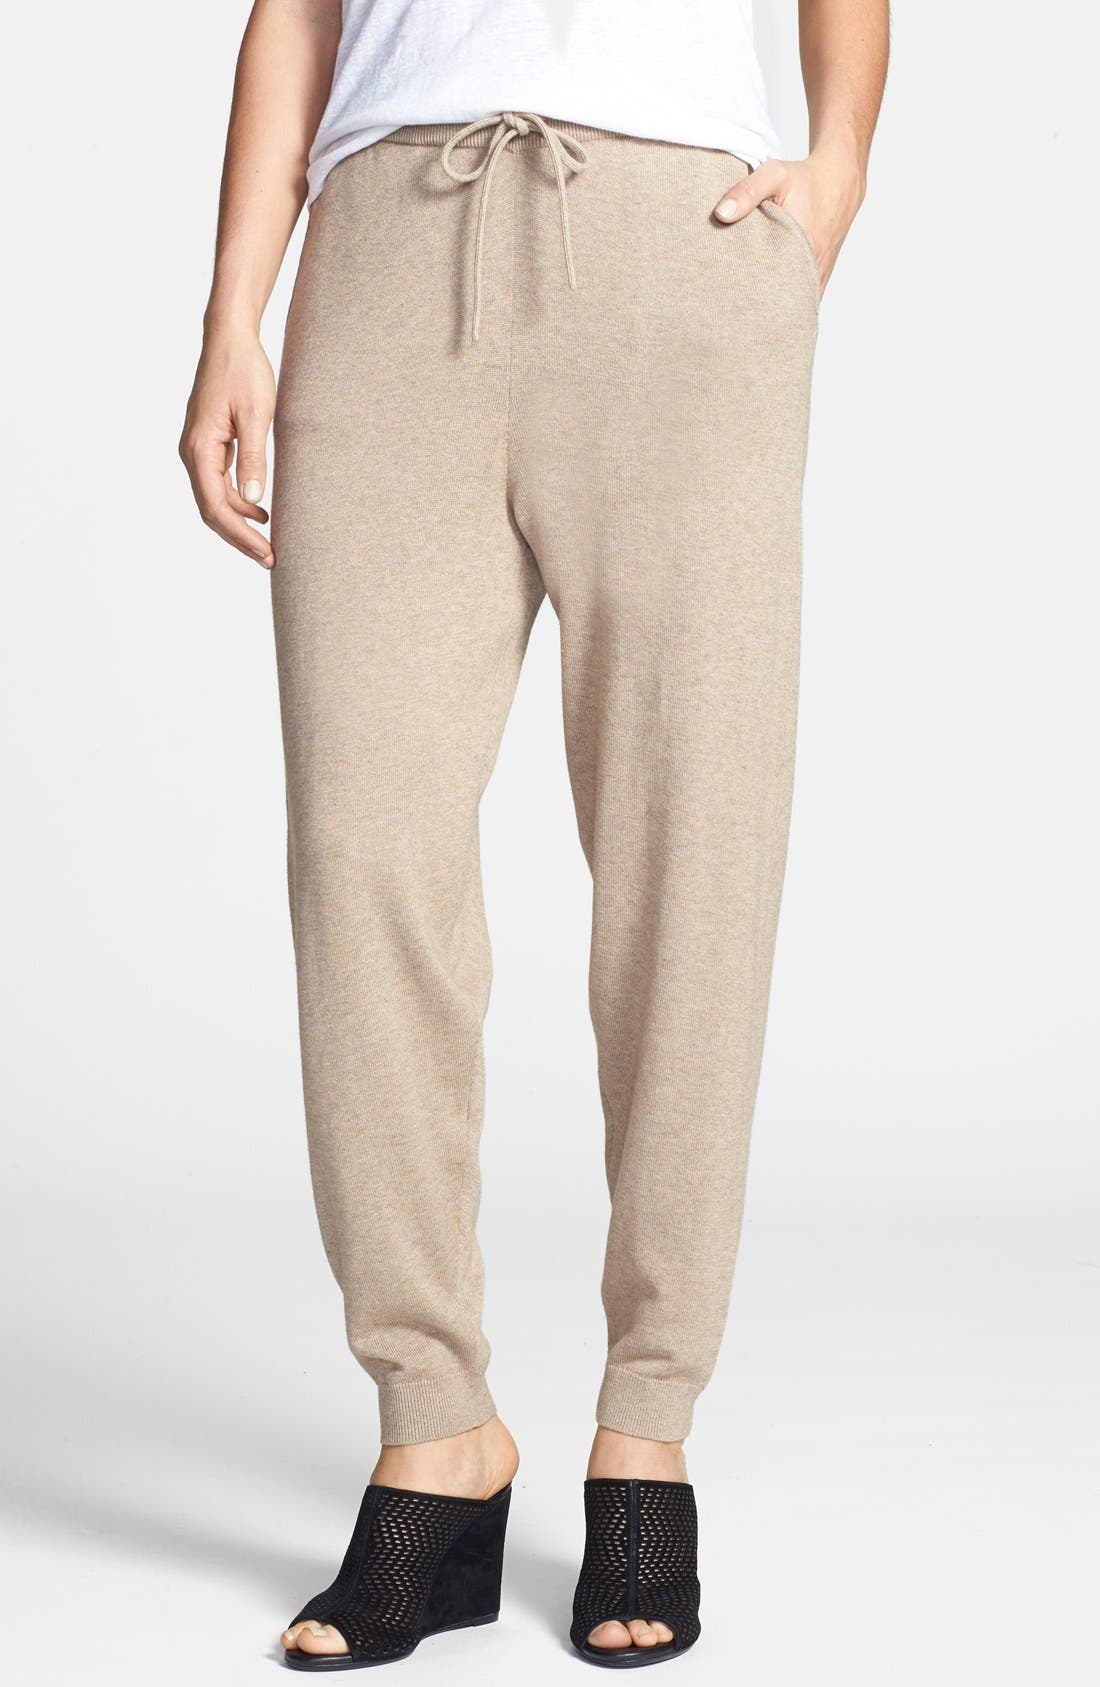 Alternate Image 1 Selected - Eileen Fisher The Fisher Project Slouchy Cotton & Cashmere Knit Ankle Pants